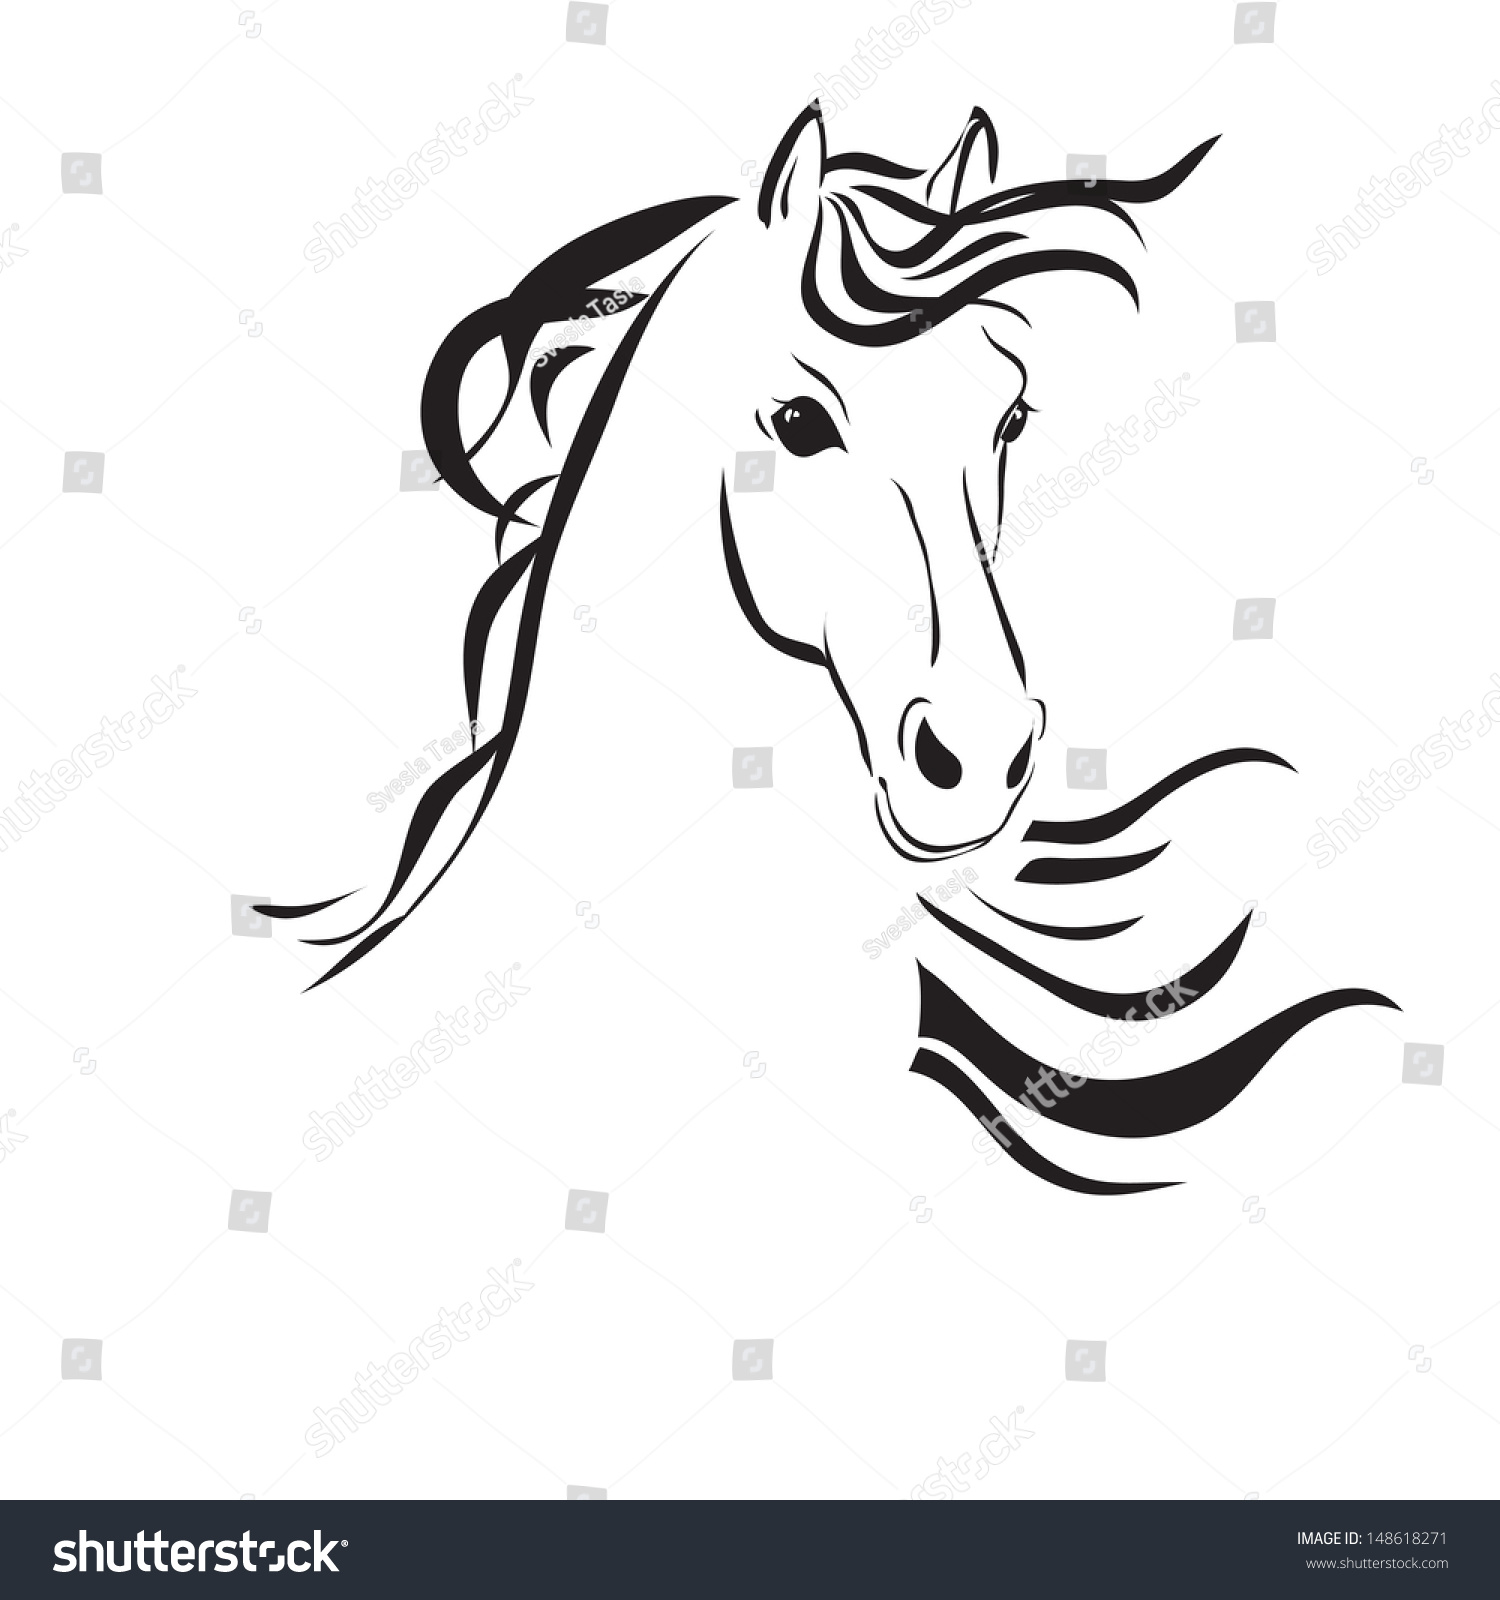 Line Drawing Horse Head : Line drawing horses head on white stock vector